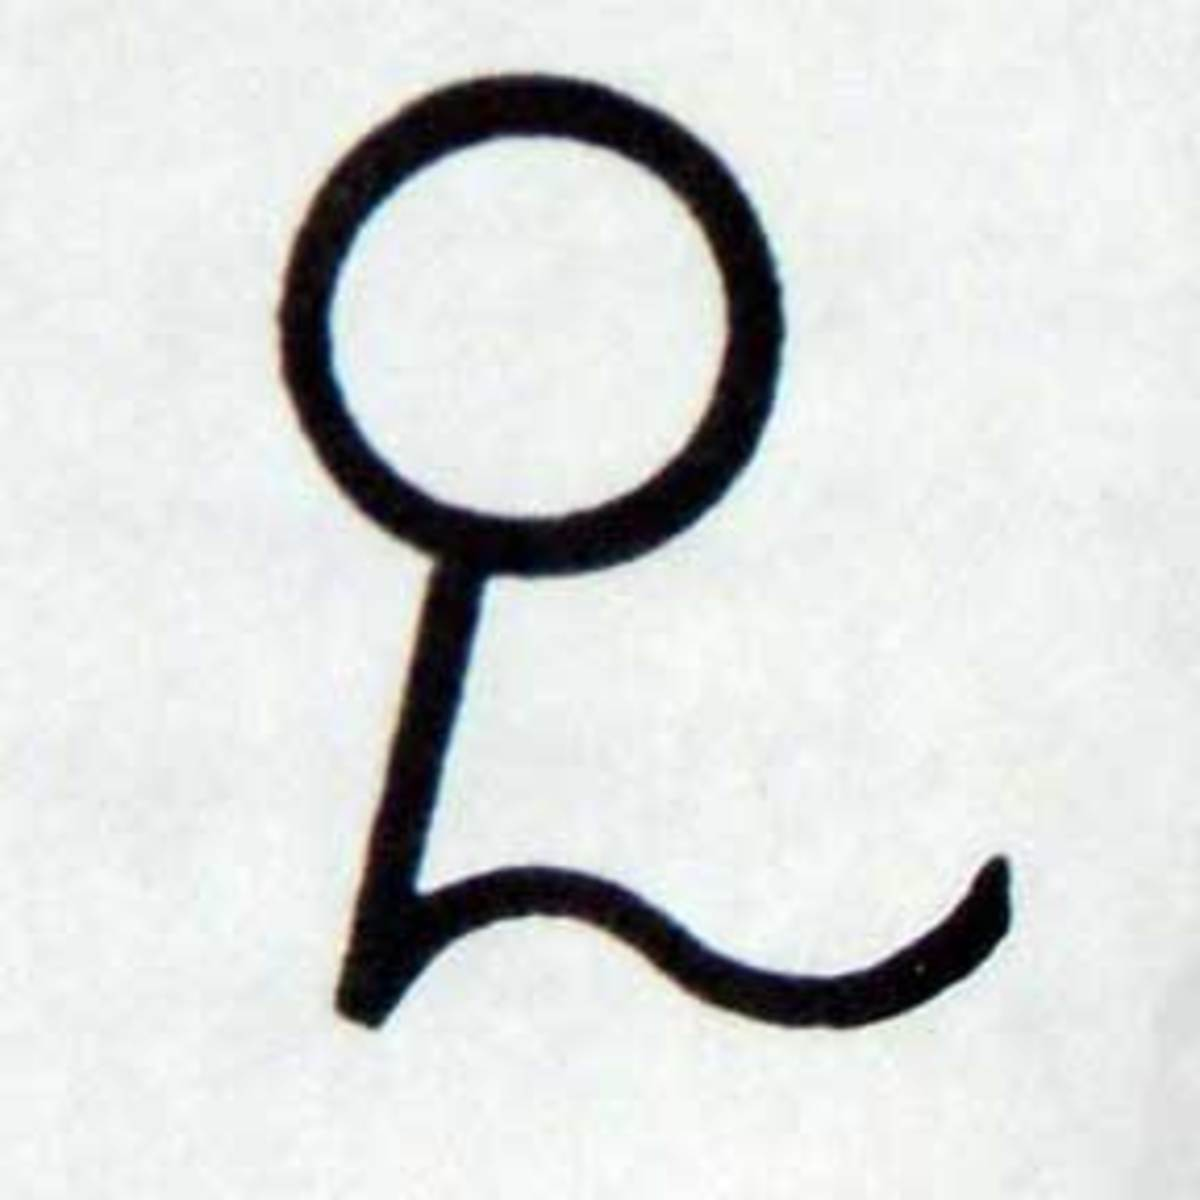 Here's the symbol I wanted for the right side of my chest